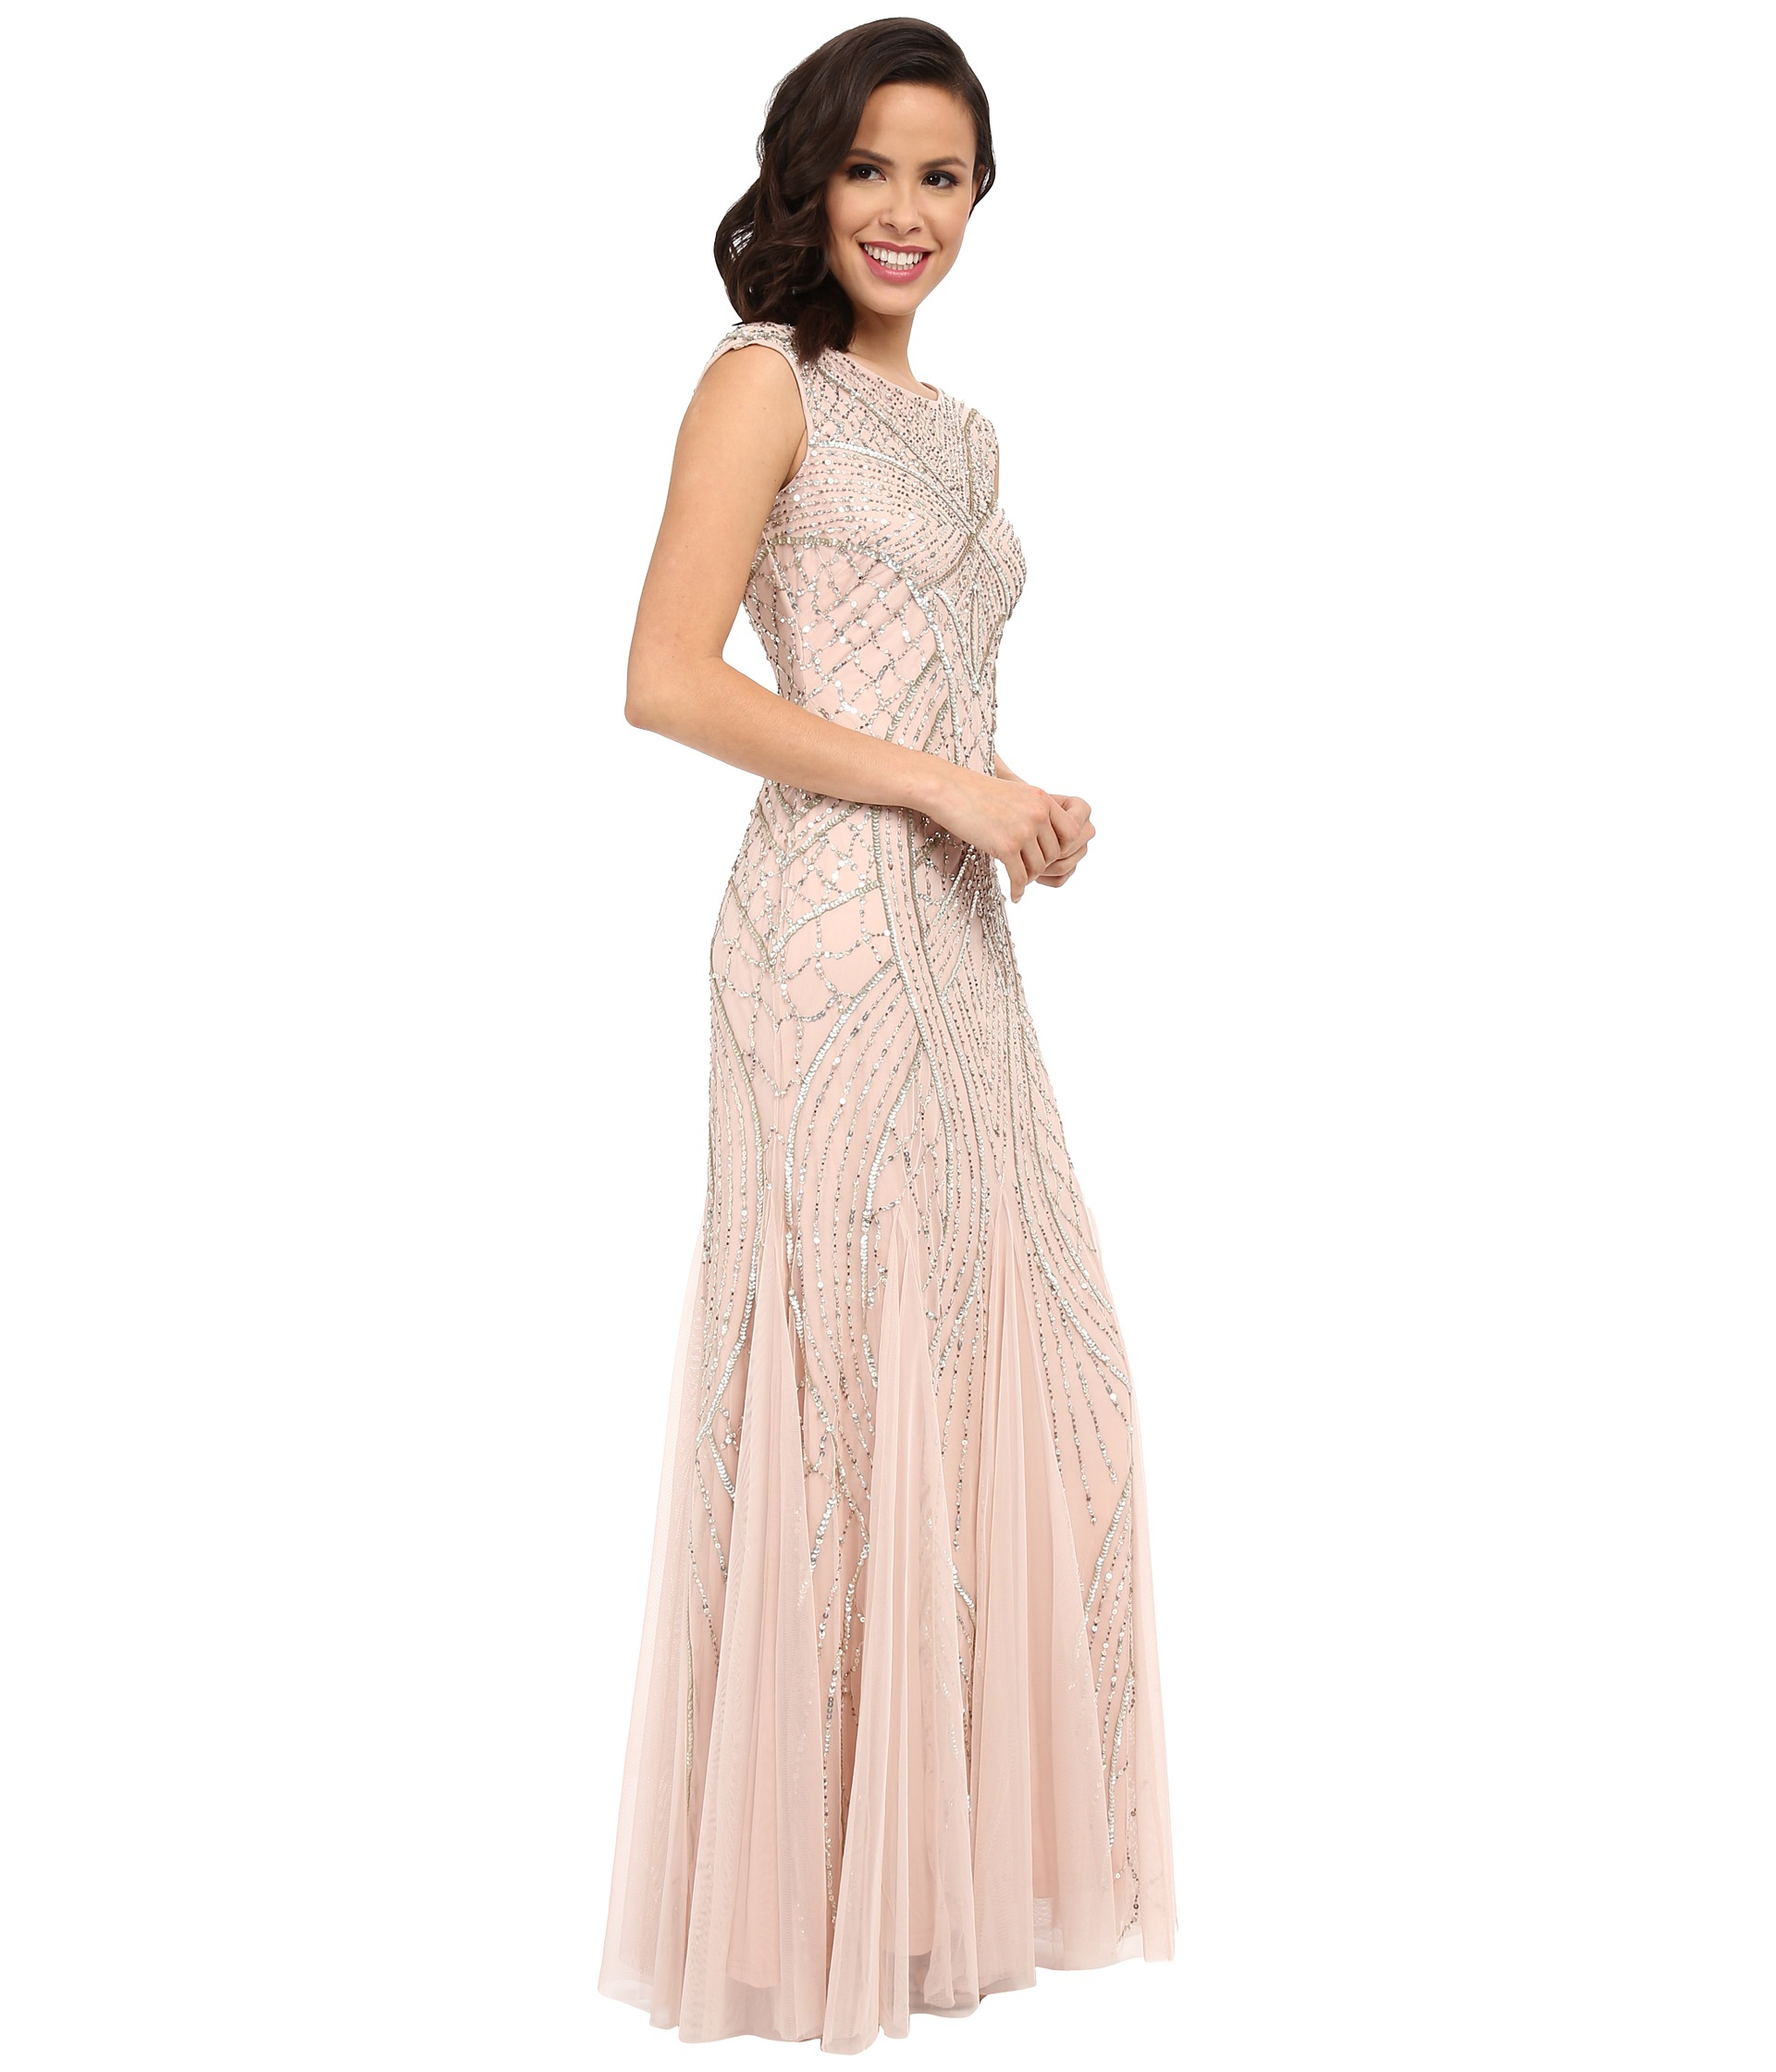 71385e322f79e6 Adrianna Papell Long Beaded Gown W/ Godets in Natural - Lyst